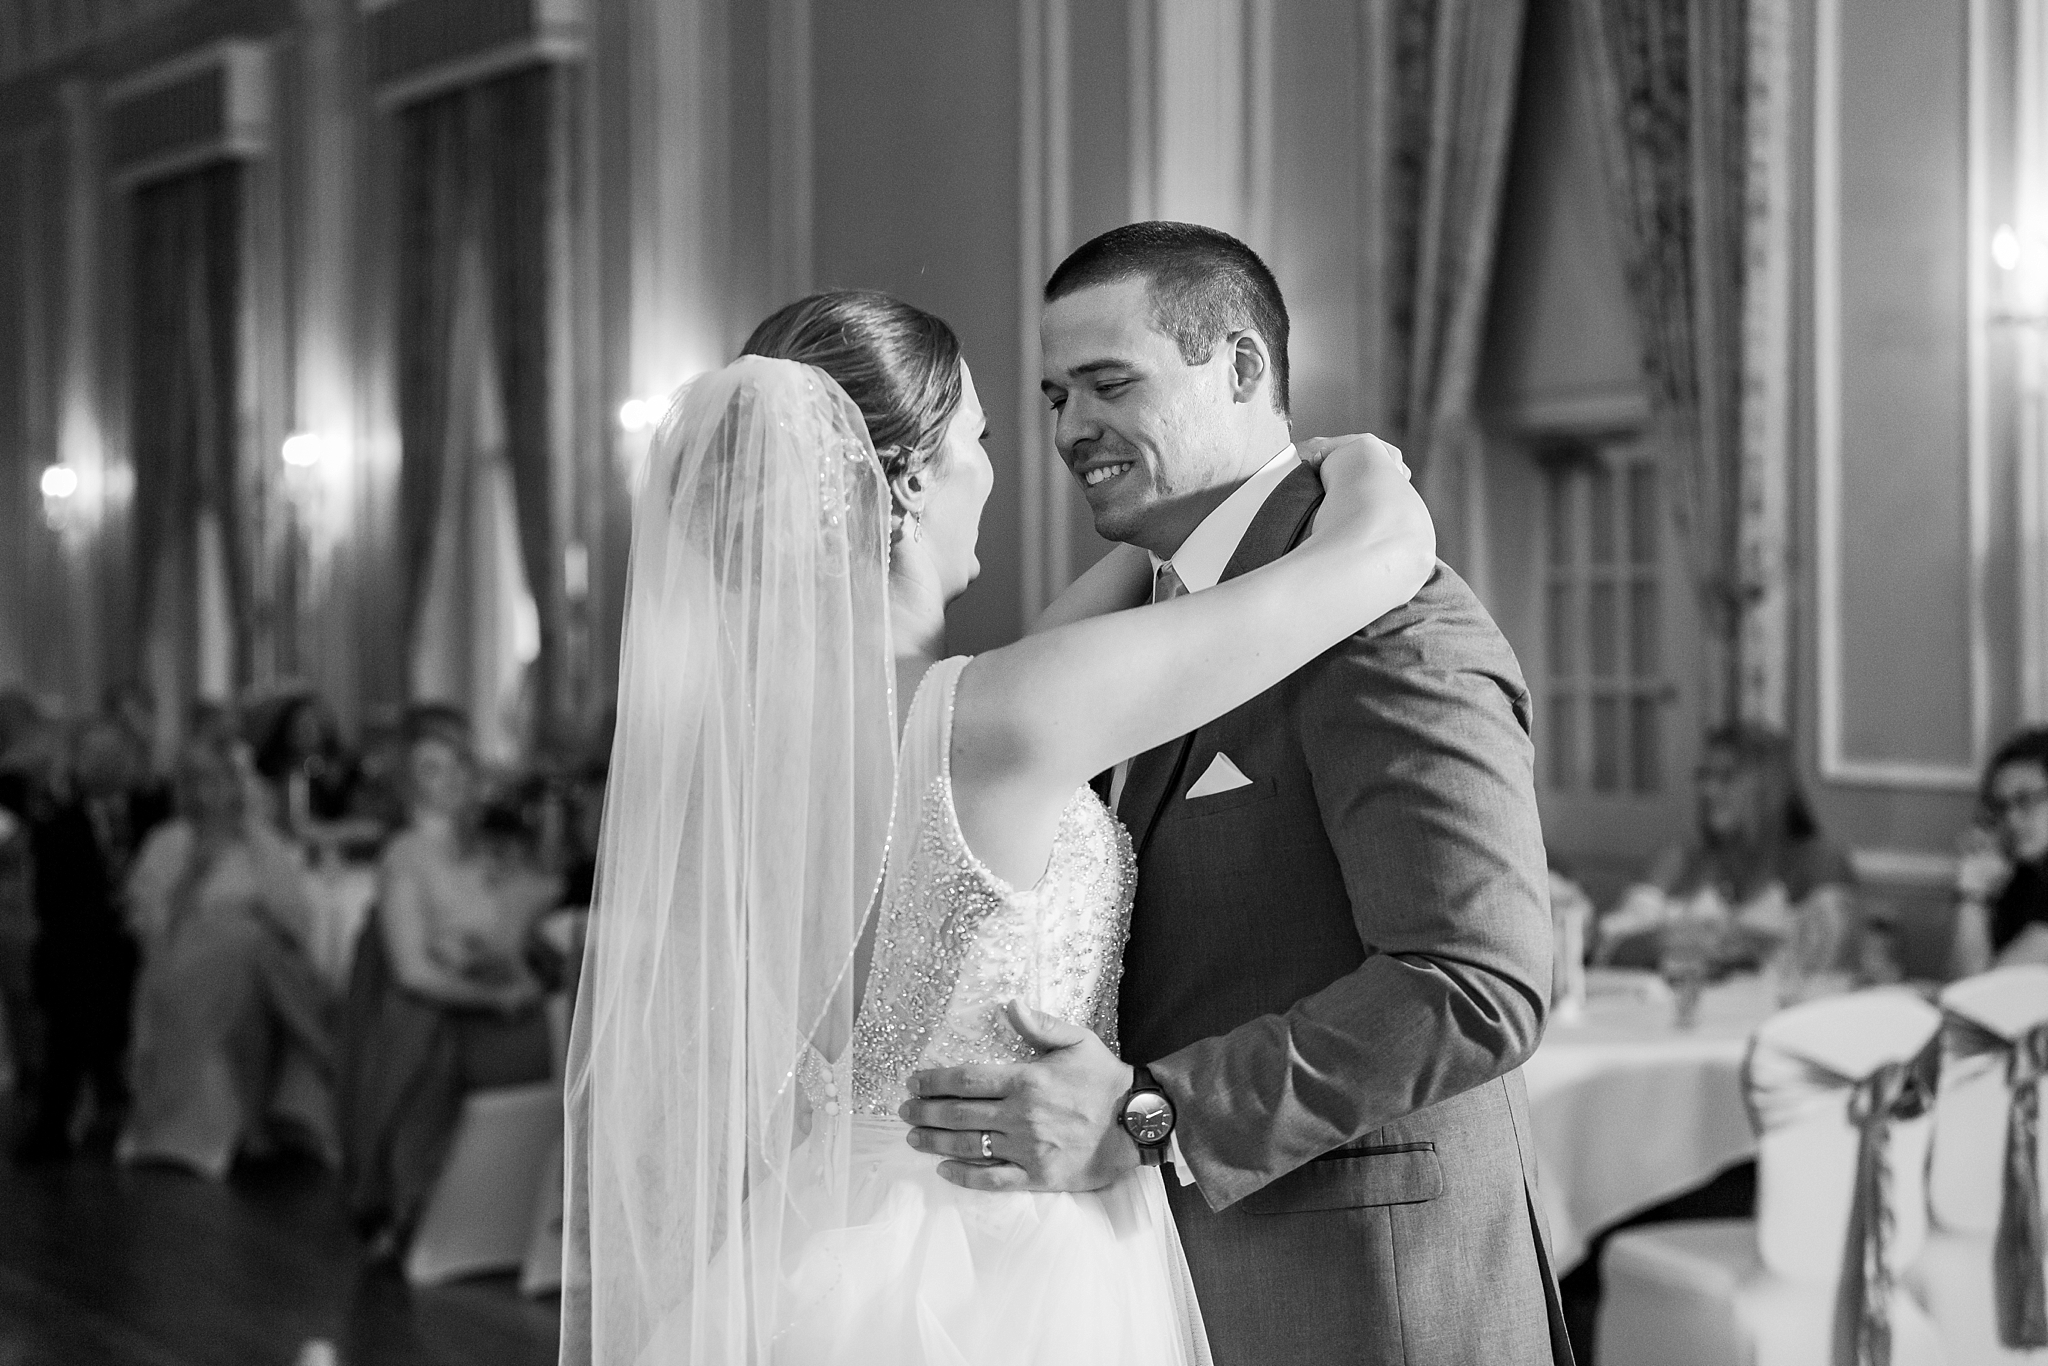 classic-intimate-fun-wedding-photos-at-the-meeting-house-grand-ballroom-in-plymouth-michigan-by-courtney-carolyn-photography_0097.jpg